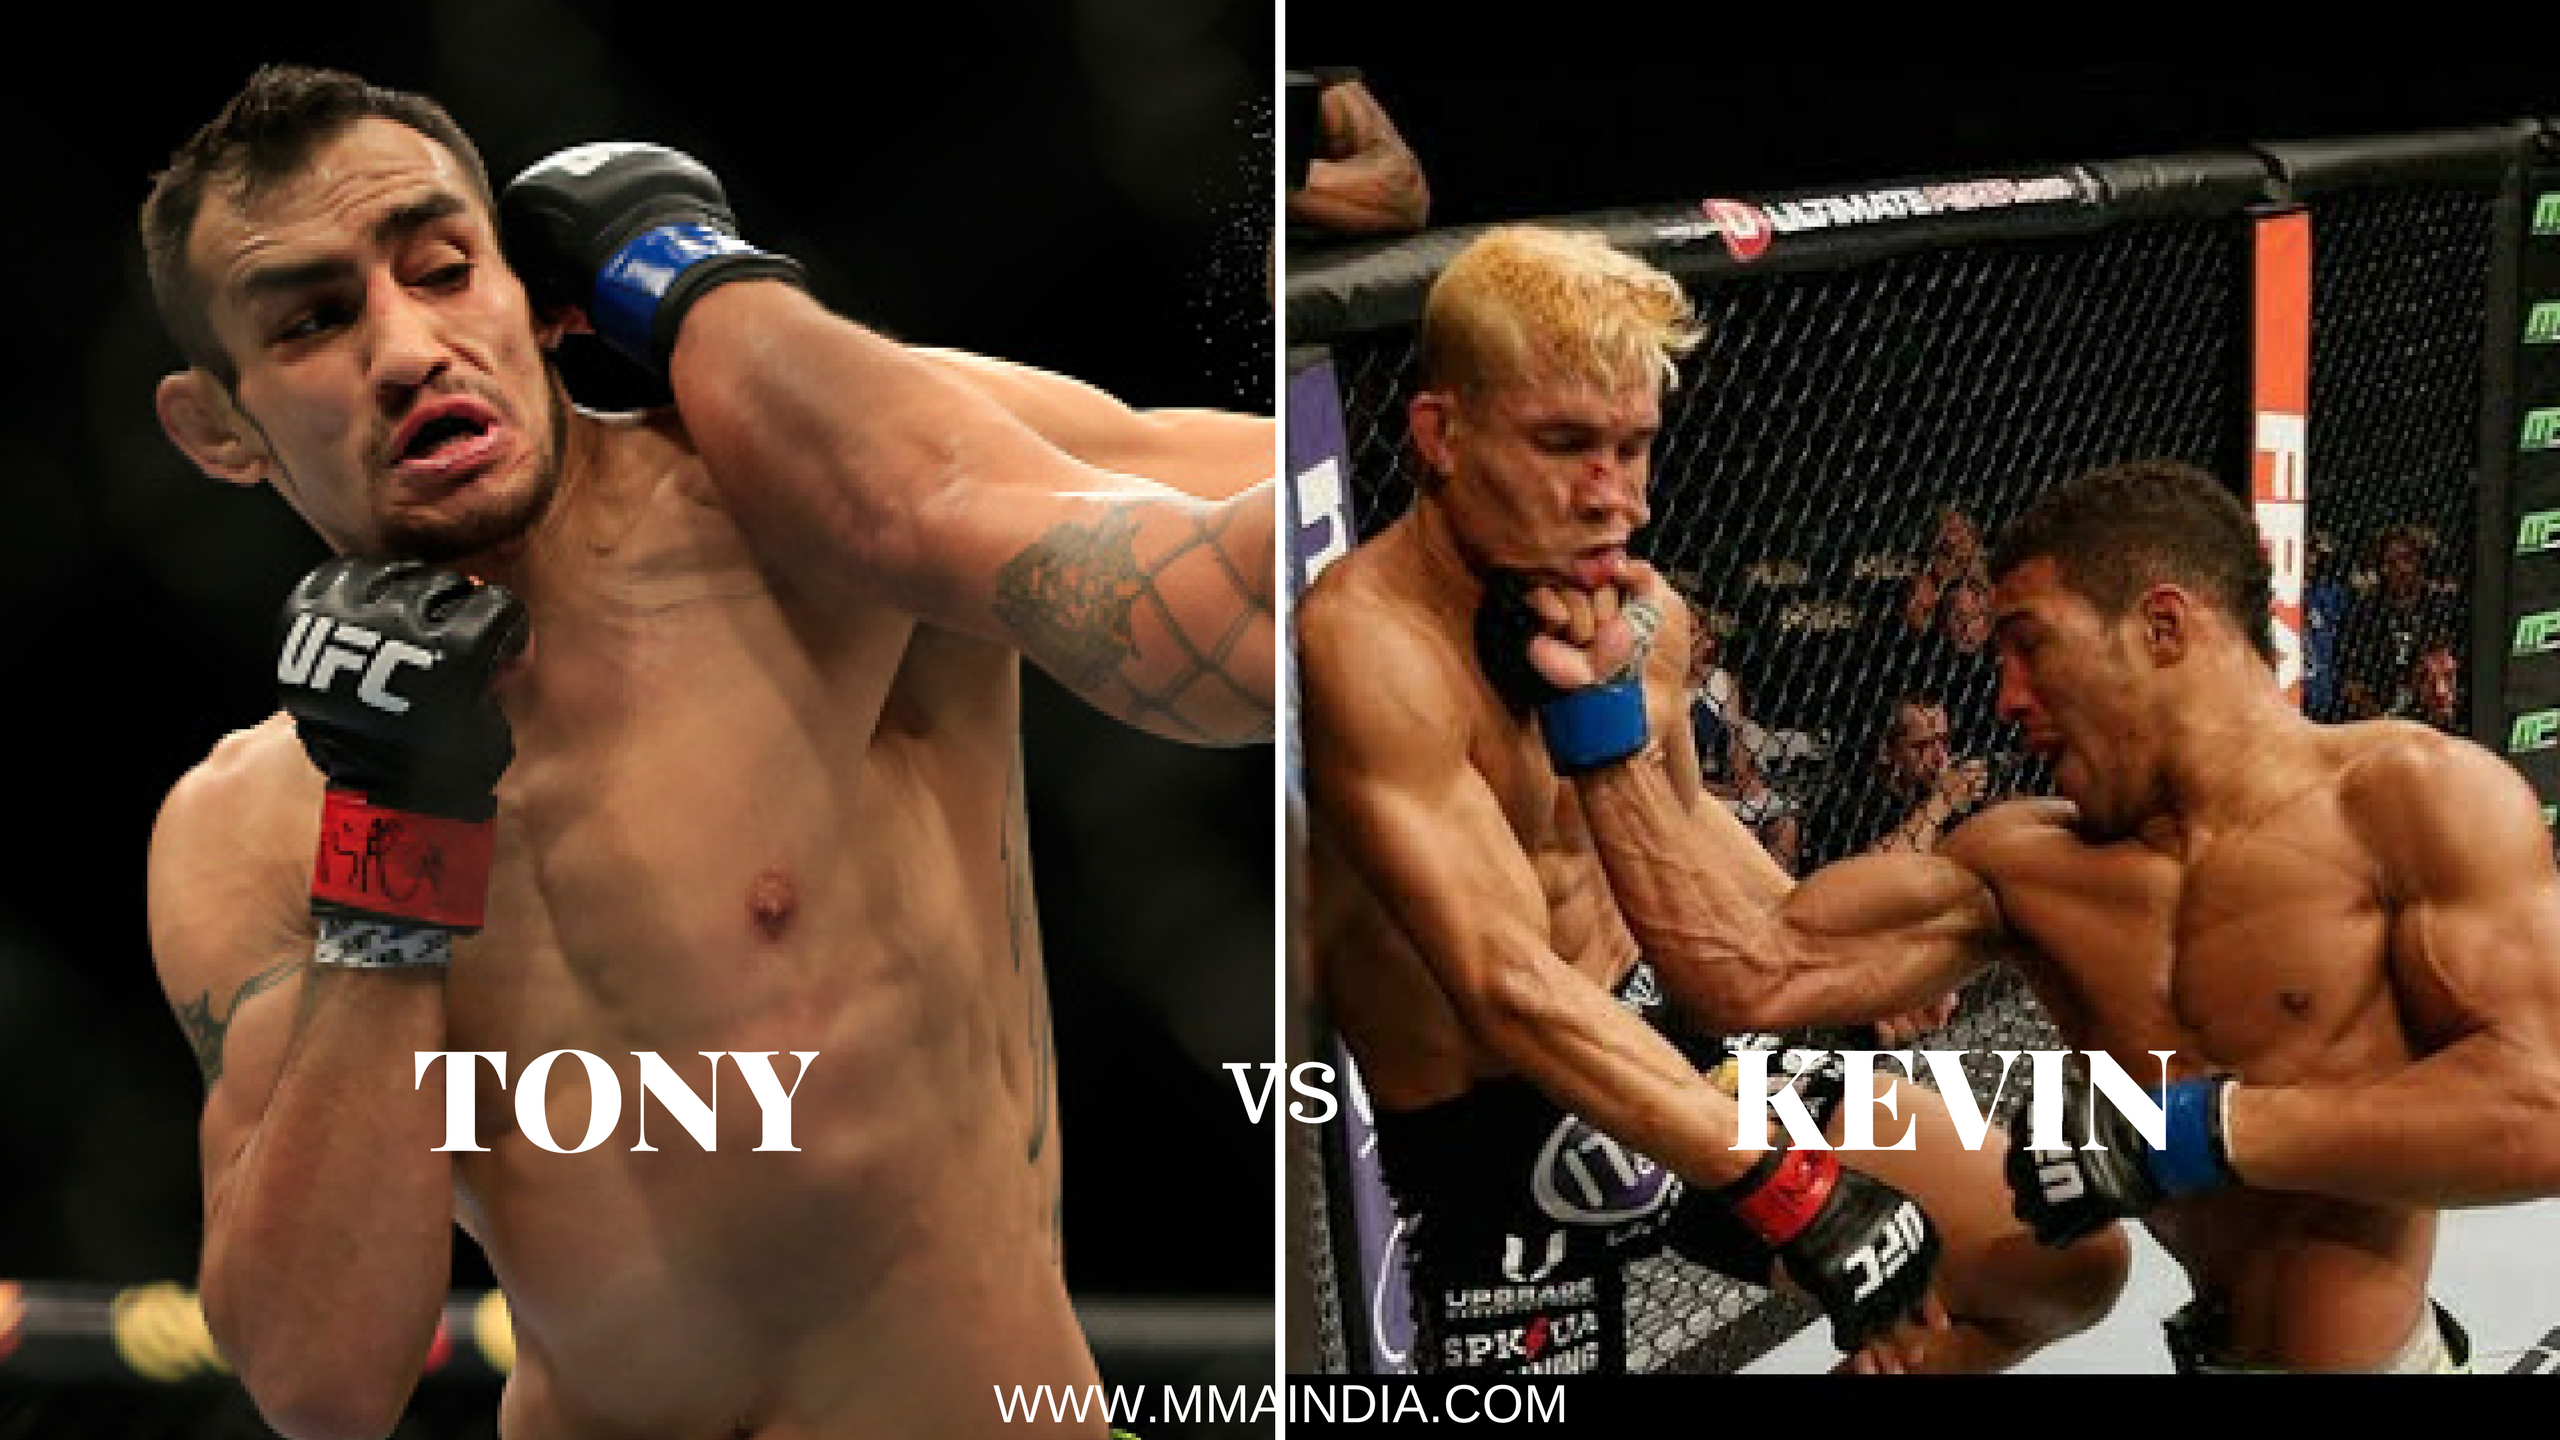 Tony Ferguson vs Kevin Lee in the works for UFC 216 -